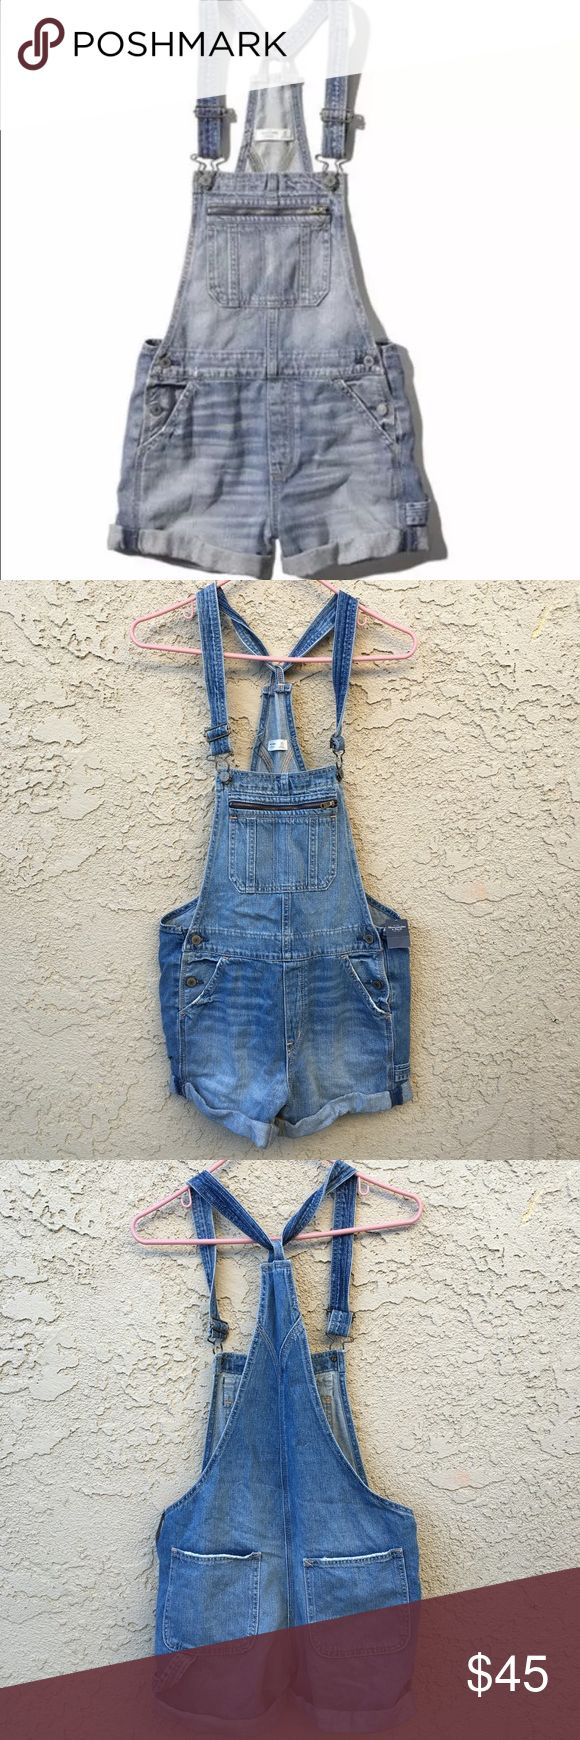 Abercrombie and Fitch short overalls Nwt size xs 🚨 NO TRADES!  OFFERS WELCOME !  •Please use the offer button for any offers  •No low balling !  •Everything cheaper thru merc, vinted, & fashion stash .  •Bundle and automatically save 10% Abercrombie & Fitch Shorts